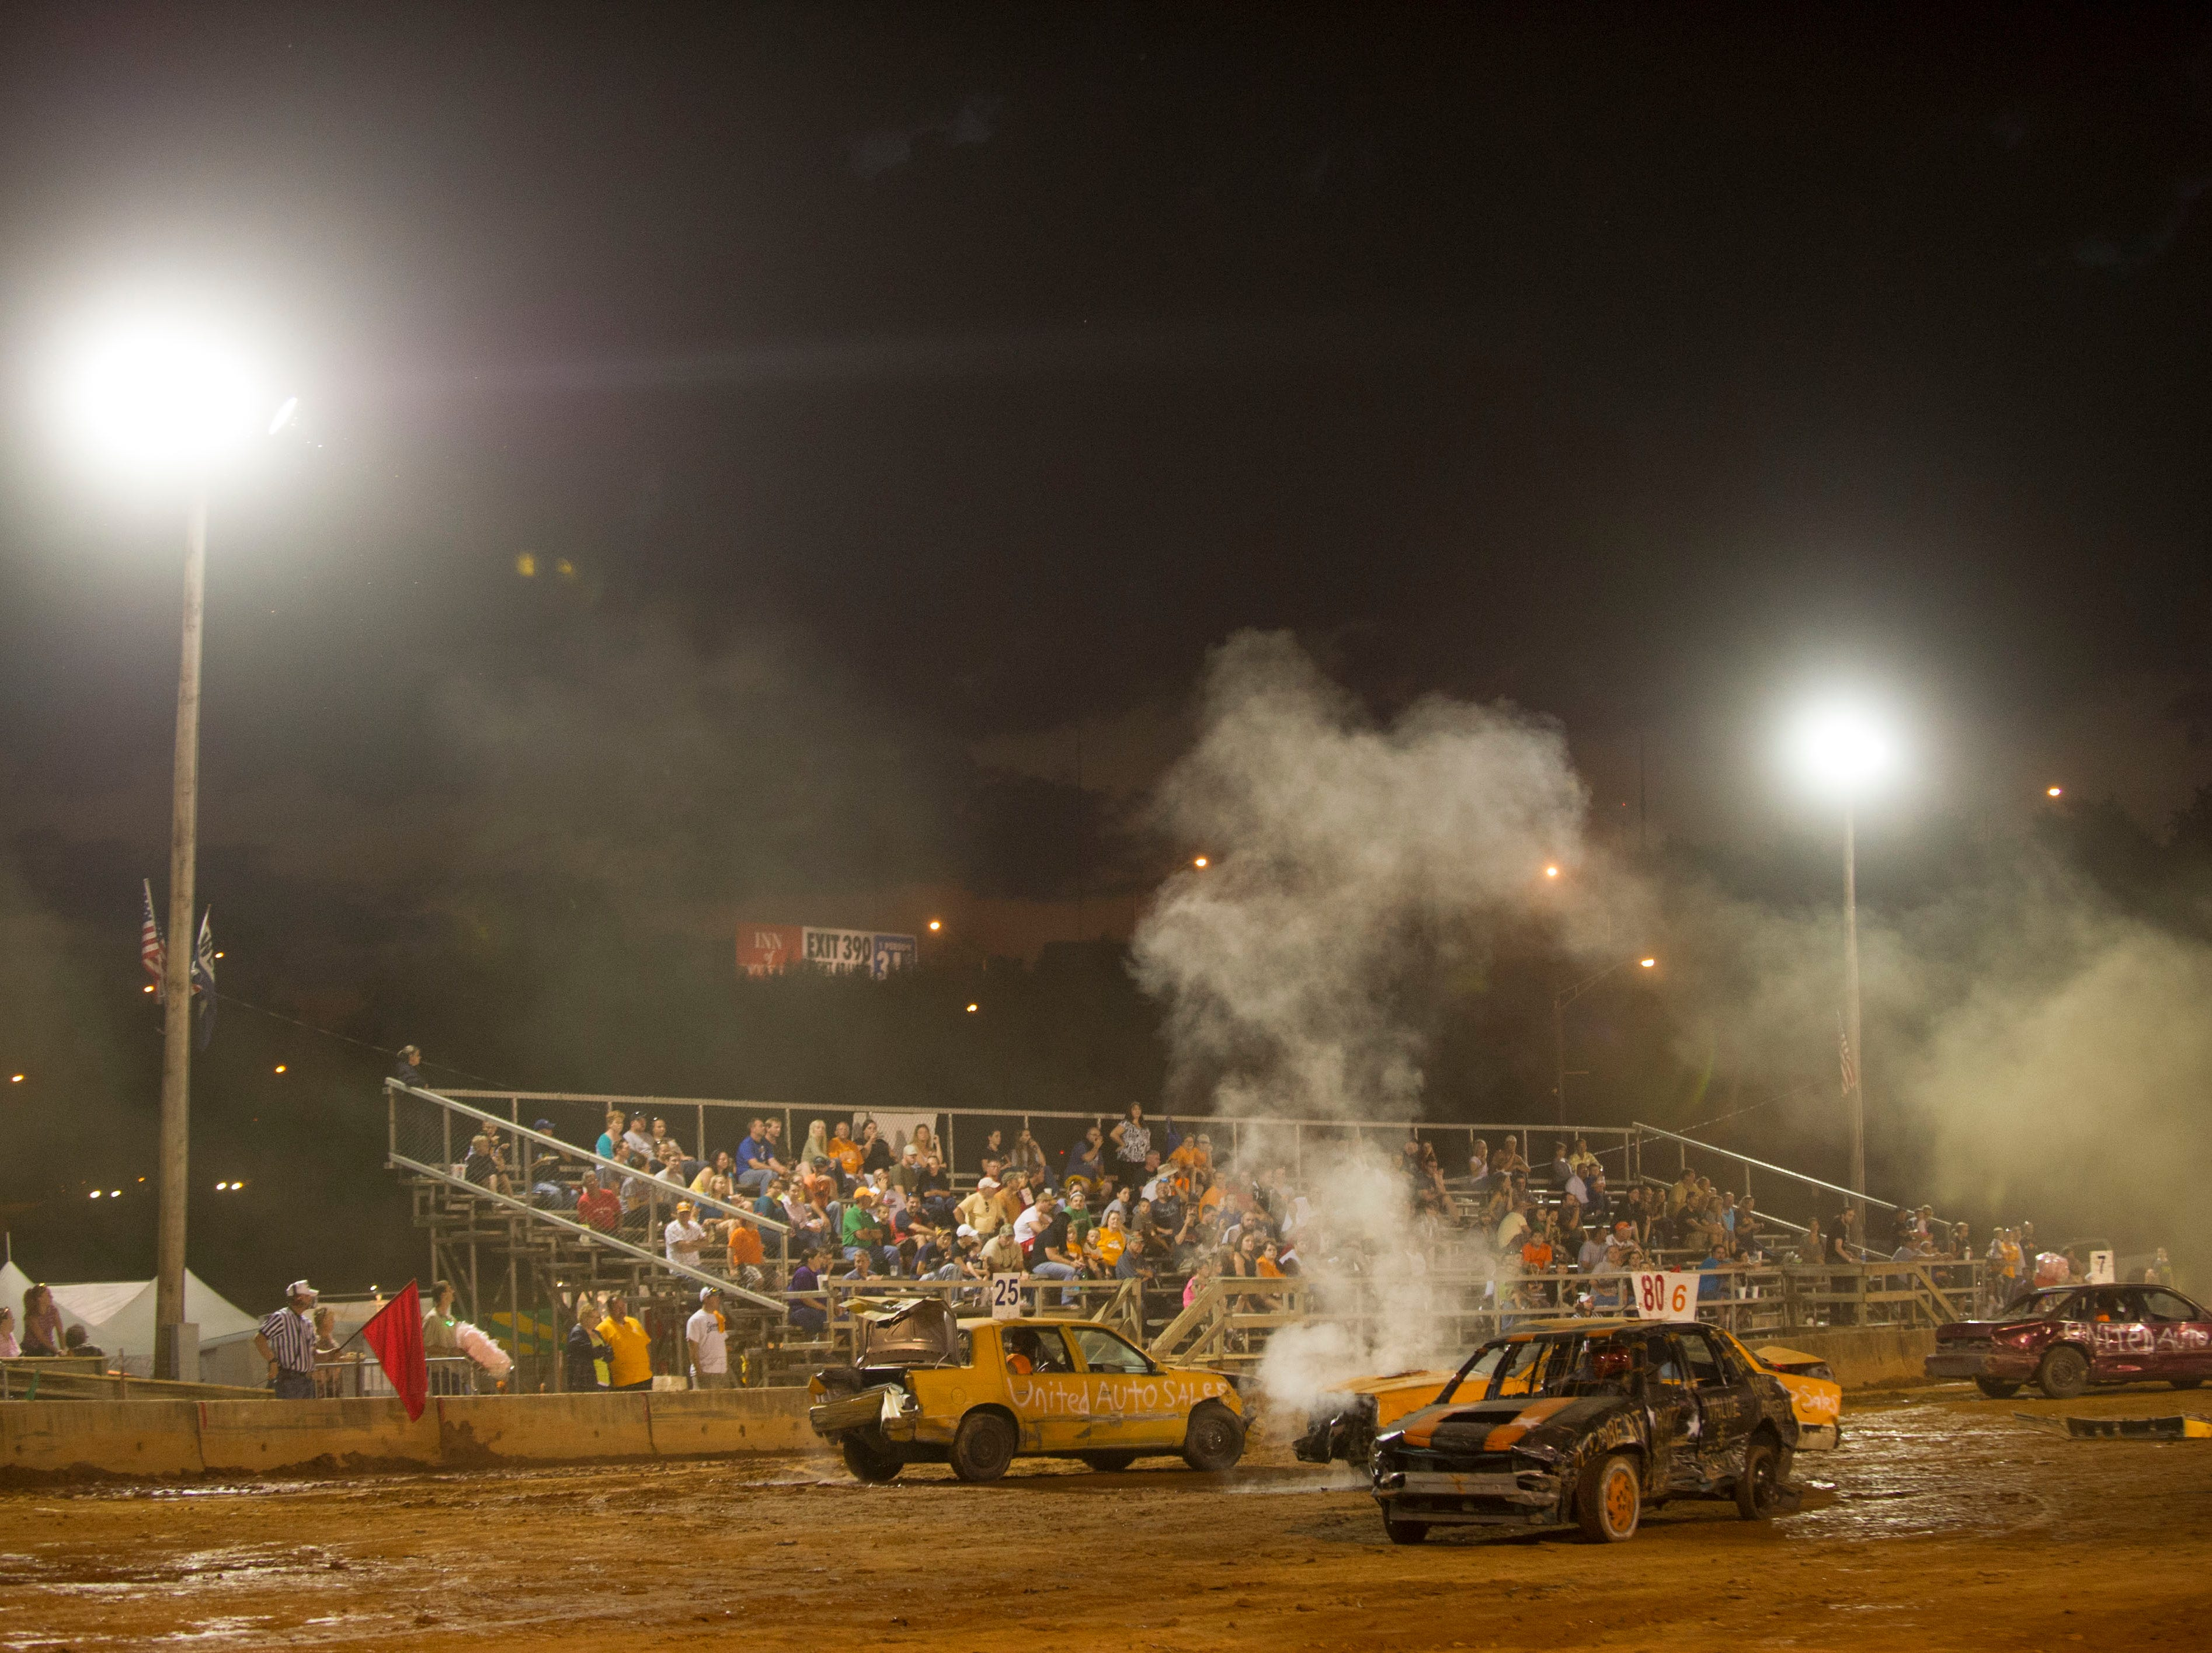 Drivers participate in the demolition derby at the Tennessee Valley Fair Wednesday, Sept. 12, 2012.